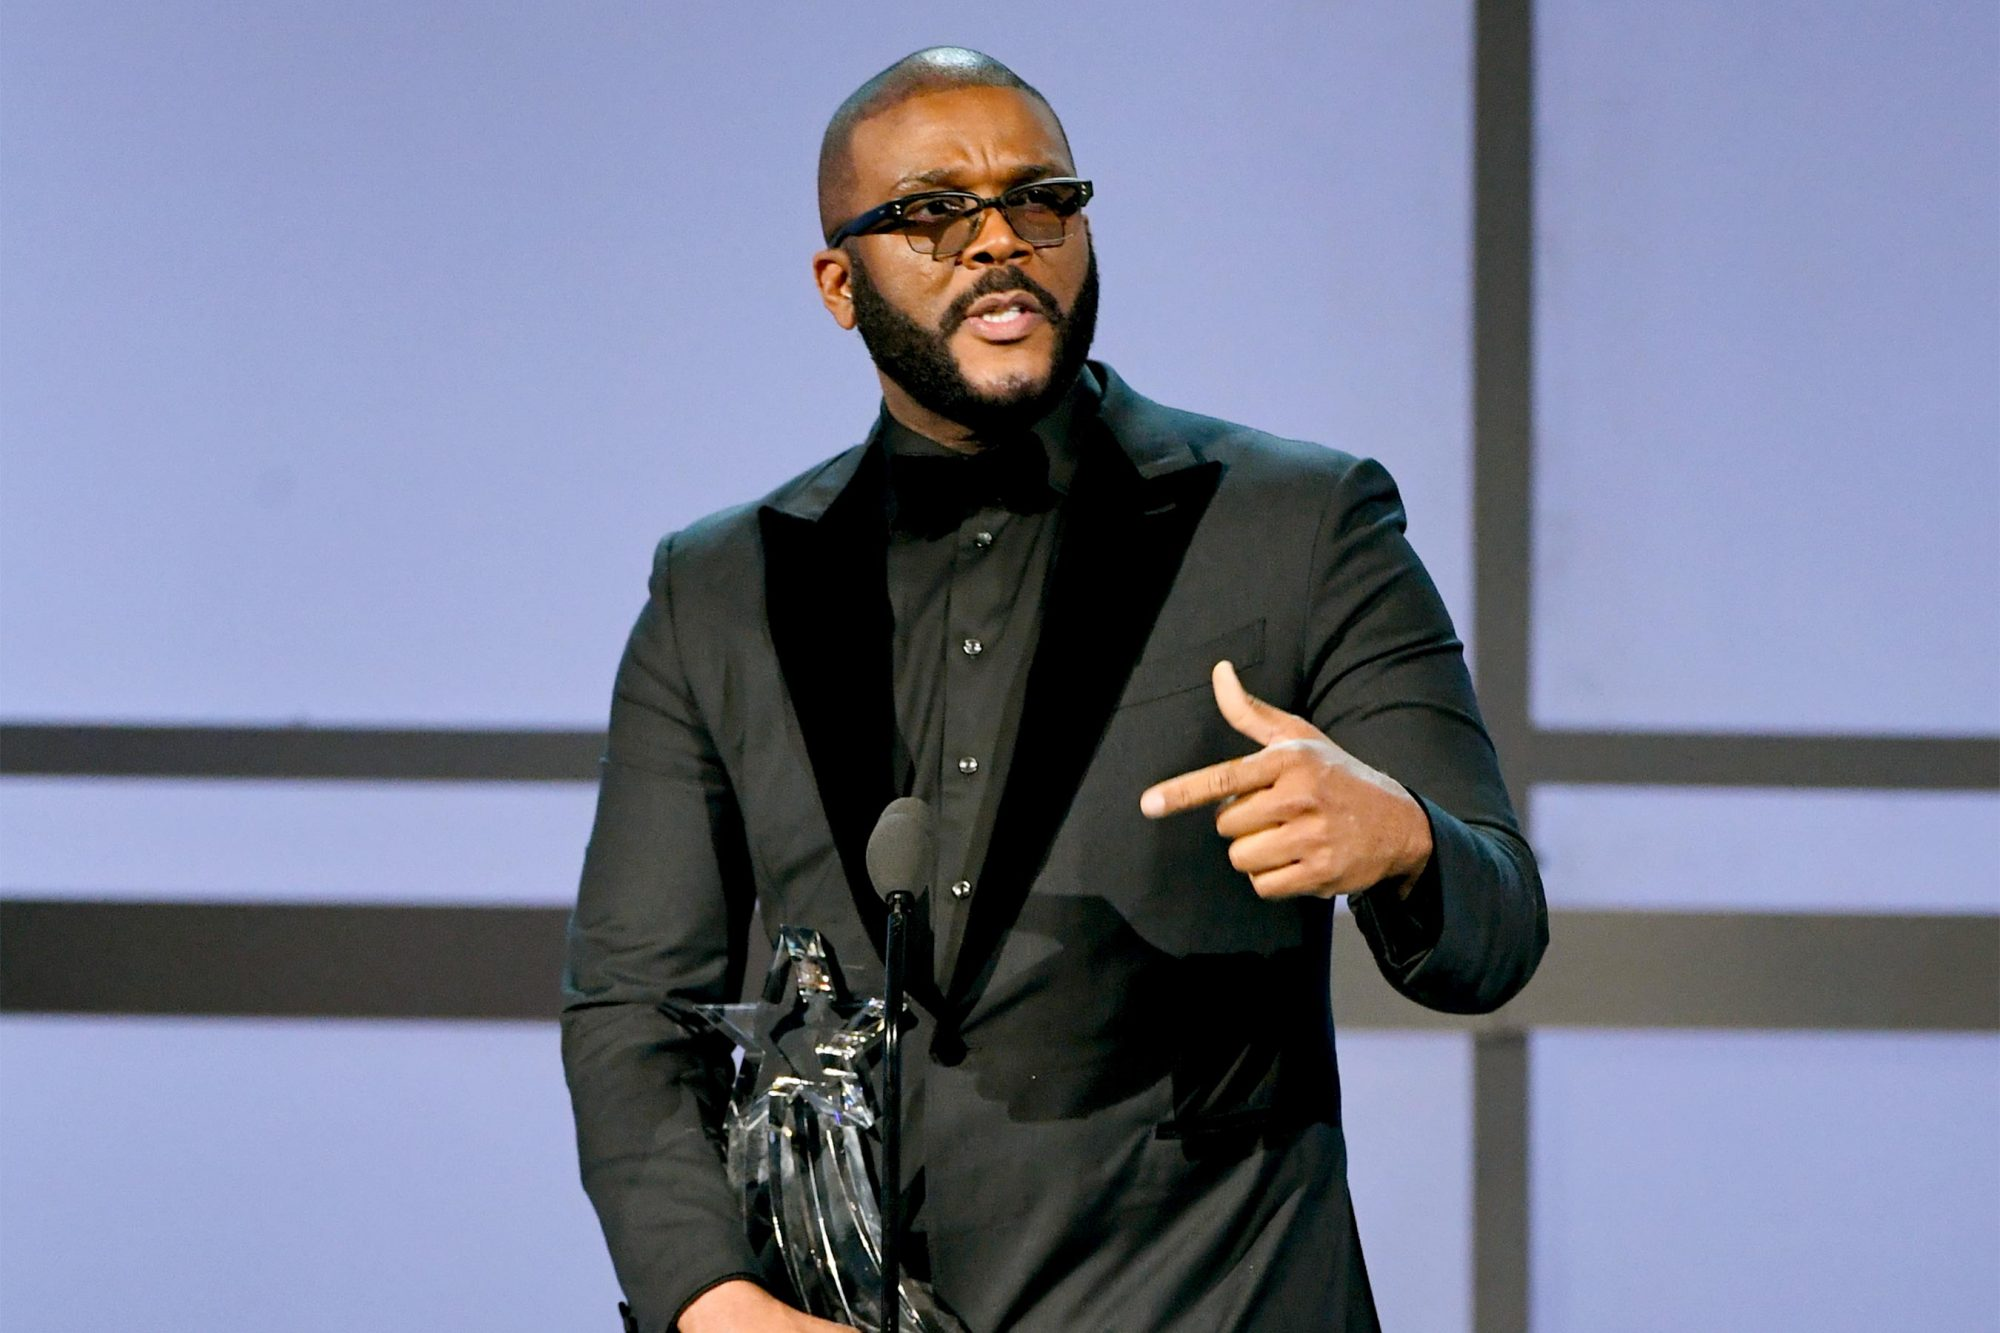 LOS ANGELES, CALIFORNIA - JUNE 23: Tyler Perry accepts the Ultimate Icon Award onstage at the 2019 BET Awards on June 23, 2019 in Los Angeles, California. (Photo by Kevin Winter/Getty Images)